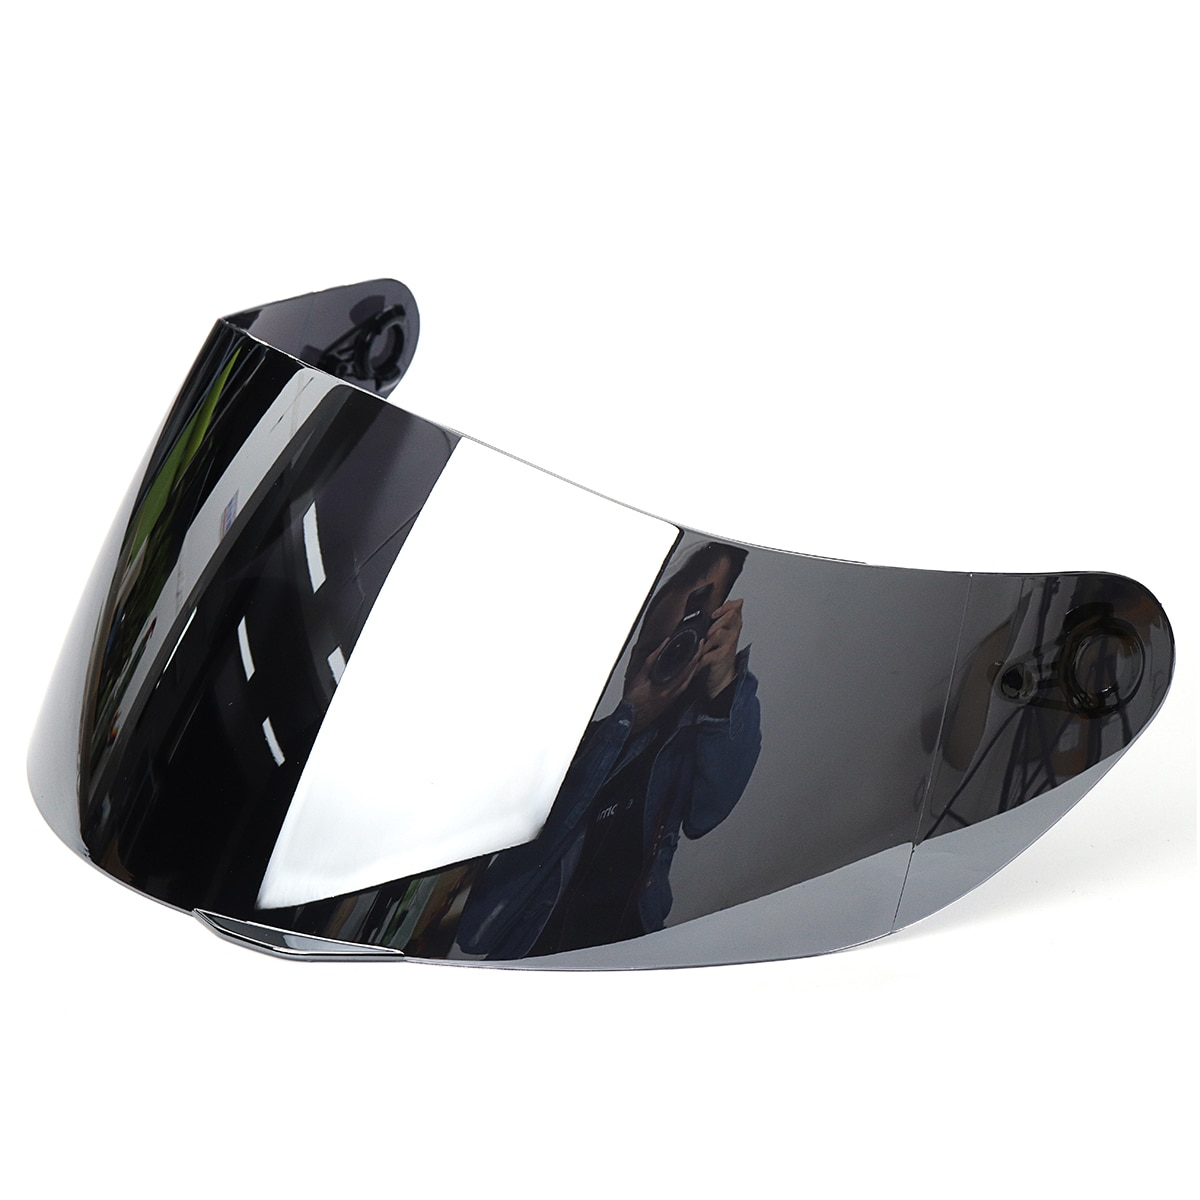 Silver-plated helmet lens windshield Silver-plated helmet lens windshield for motorcyc Protects Eyes while Driving